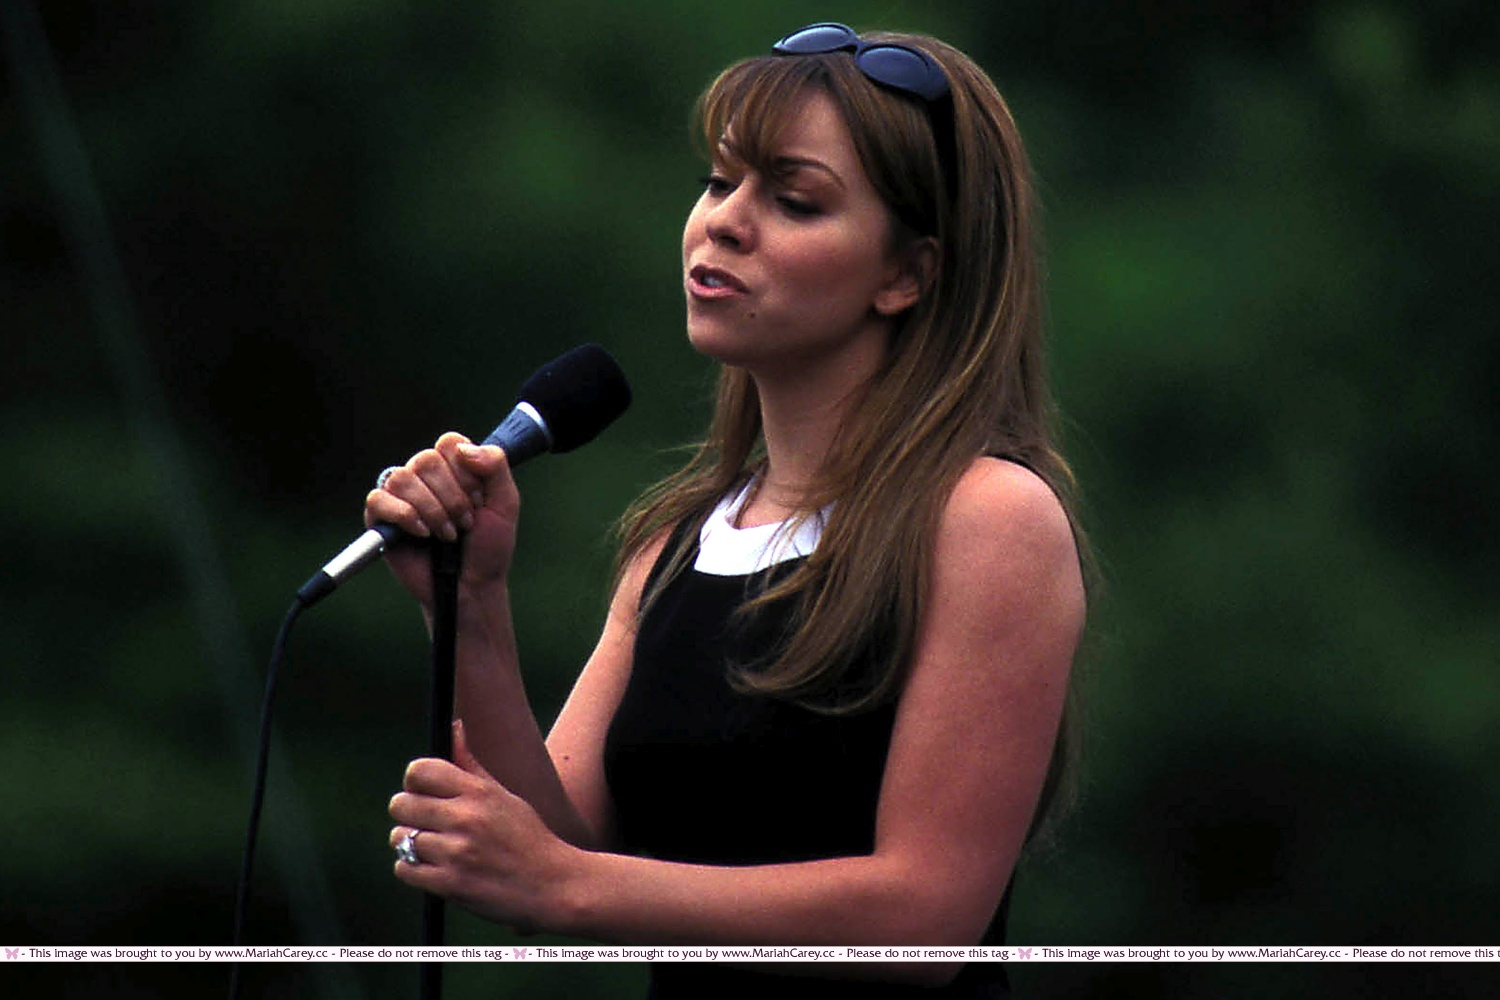 929648349_1996_05_15_national_peace_officers_memorial_day_service_04_122_377lo.jpg